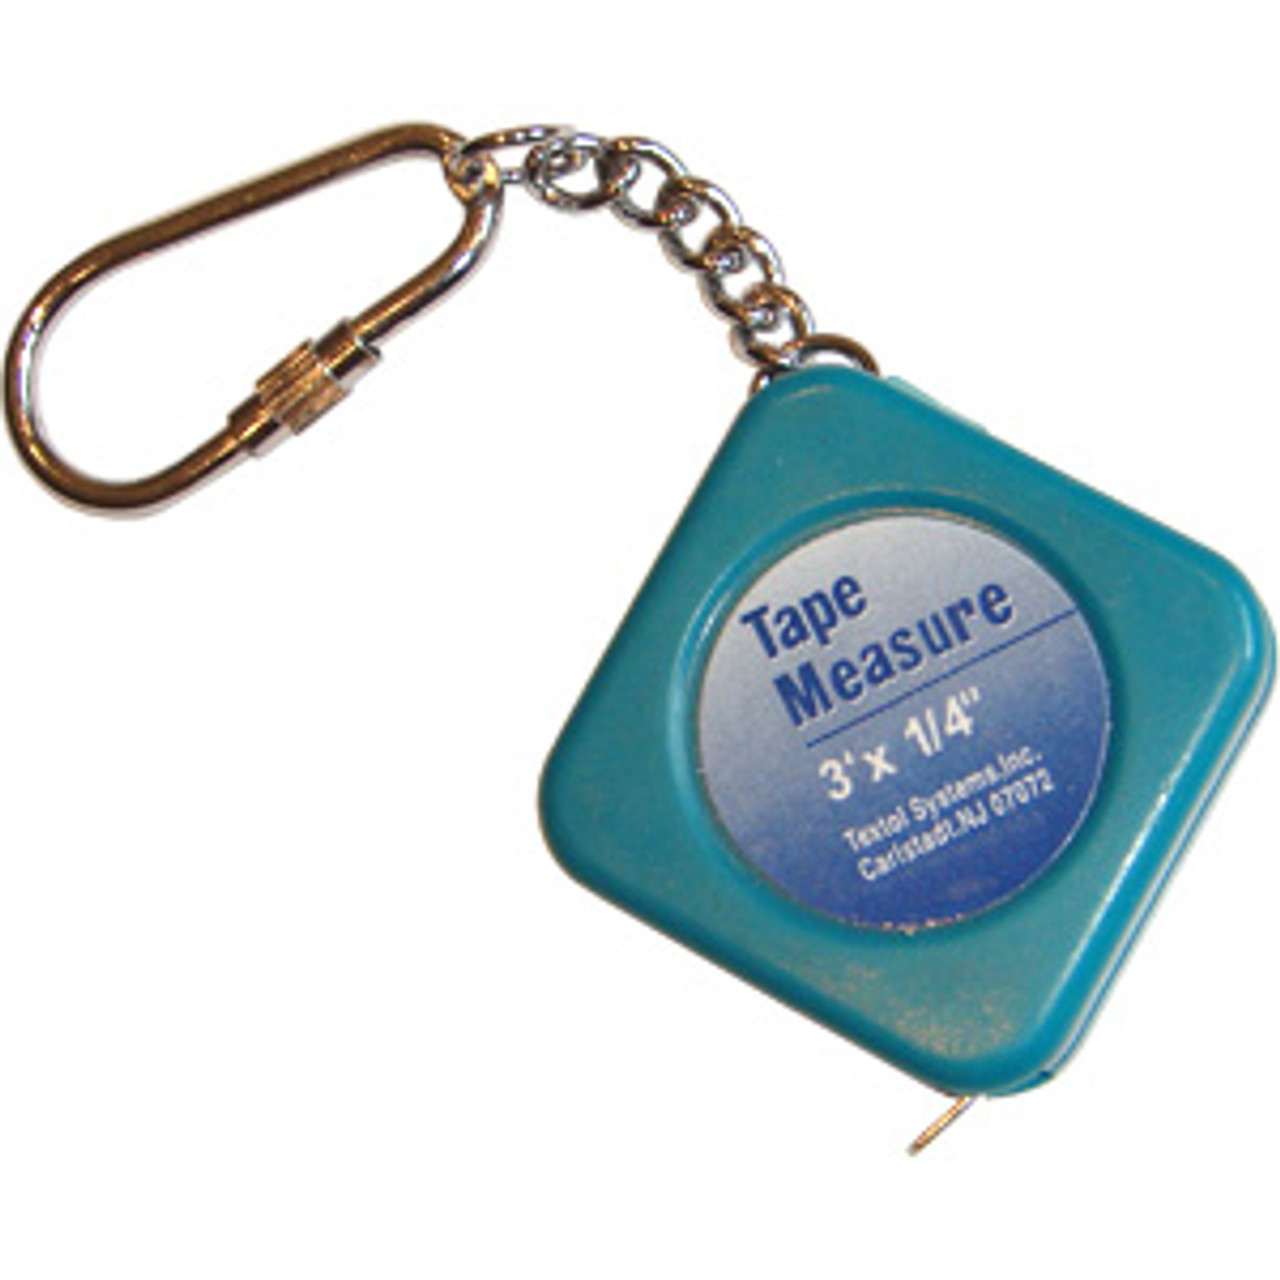 MINI TAPE MEASURE WITH KEY CHAIN, POCKET SIZED